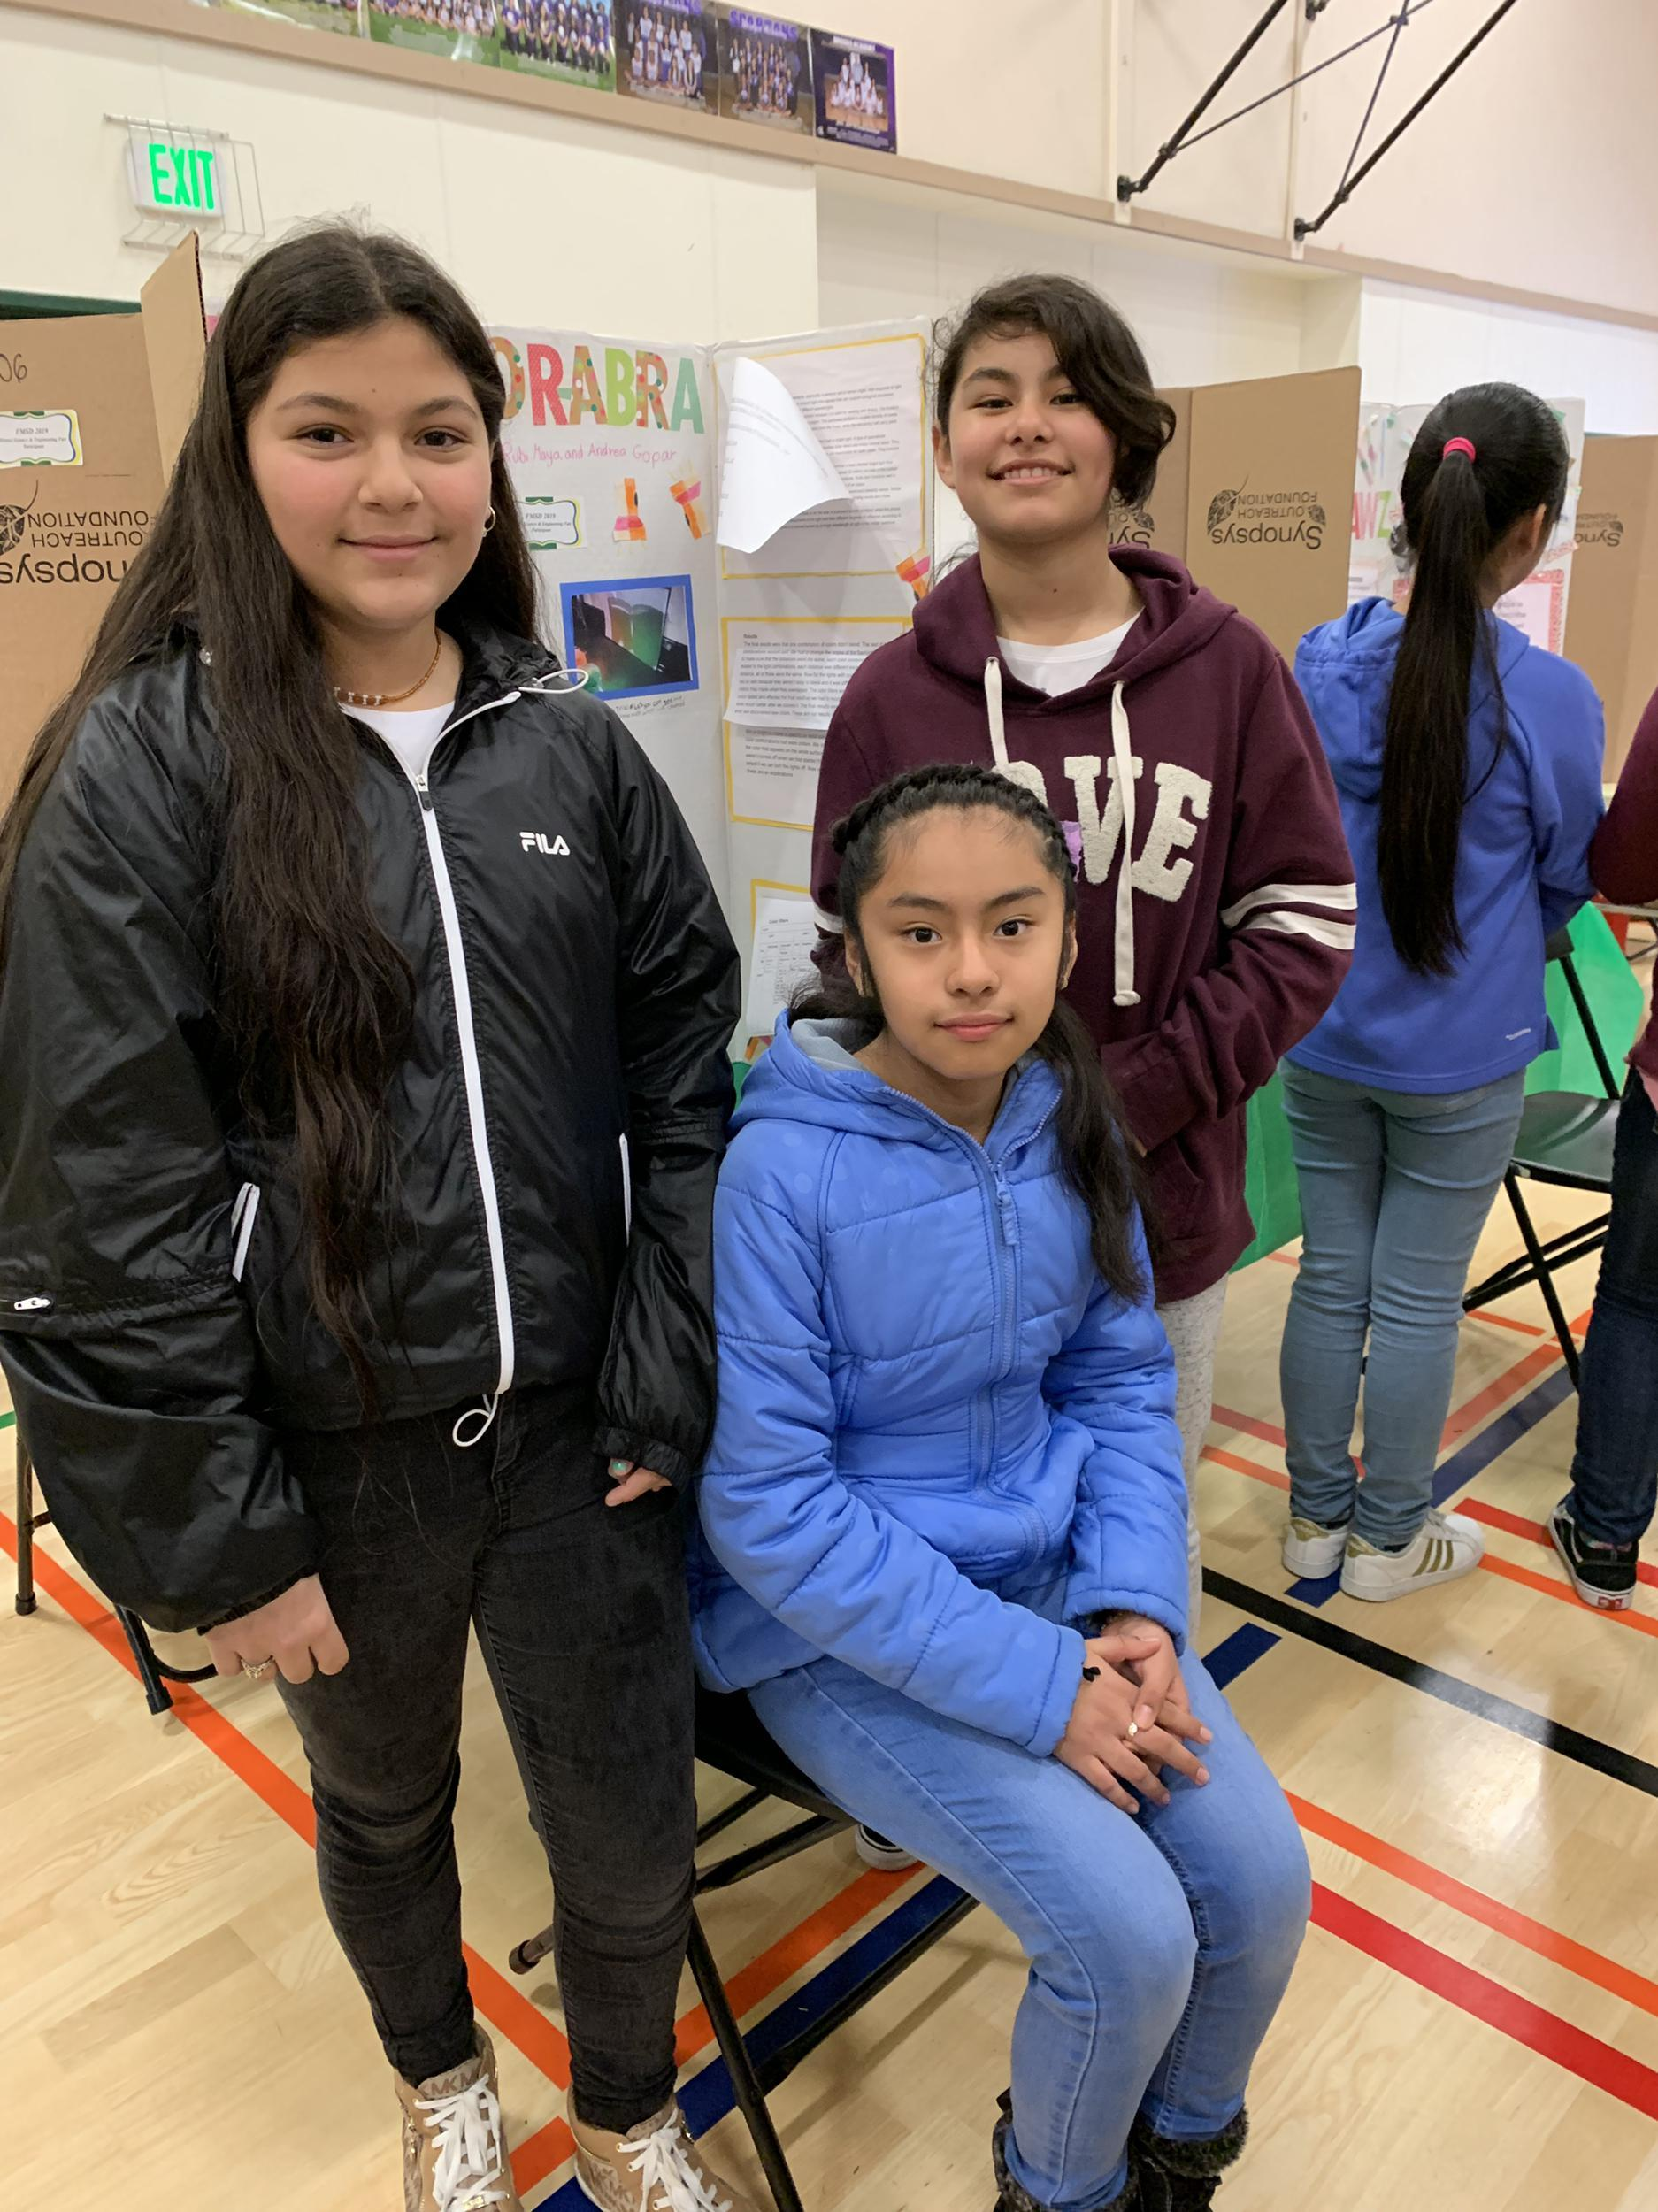 Students sitting, waiting for their science fair projects to be judged